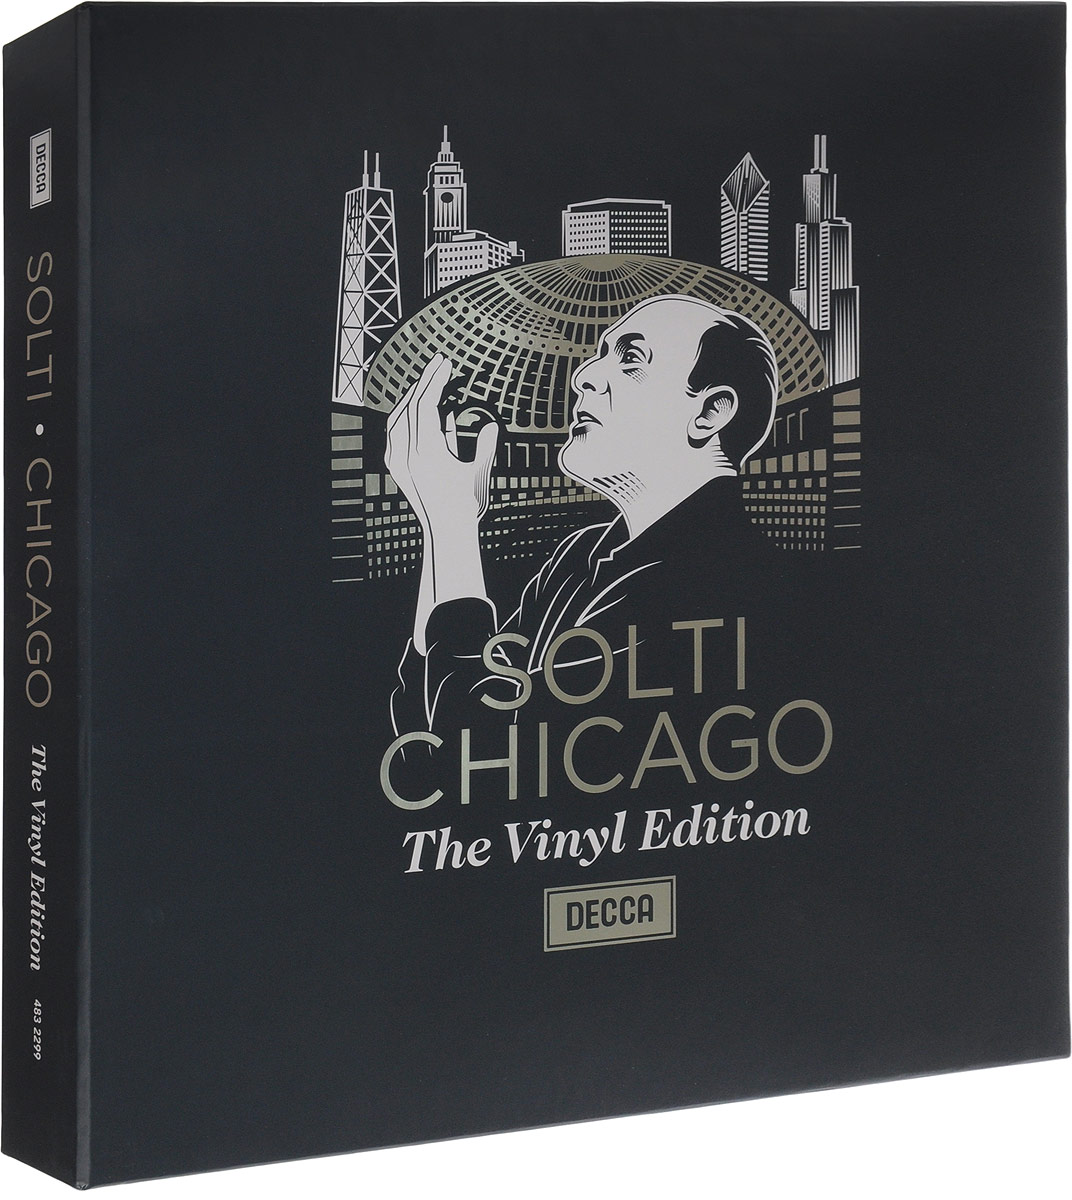 Георг Шолти Georg Solti. Chicago Years. Chicago Symphony Orchestra (6 LP) георг шолти chicago symphony orchestra chicago symphony chorus sir georg solti chicago symphony orchestra beethoven the symphonies 7 cd